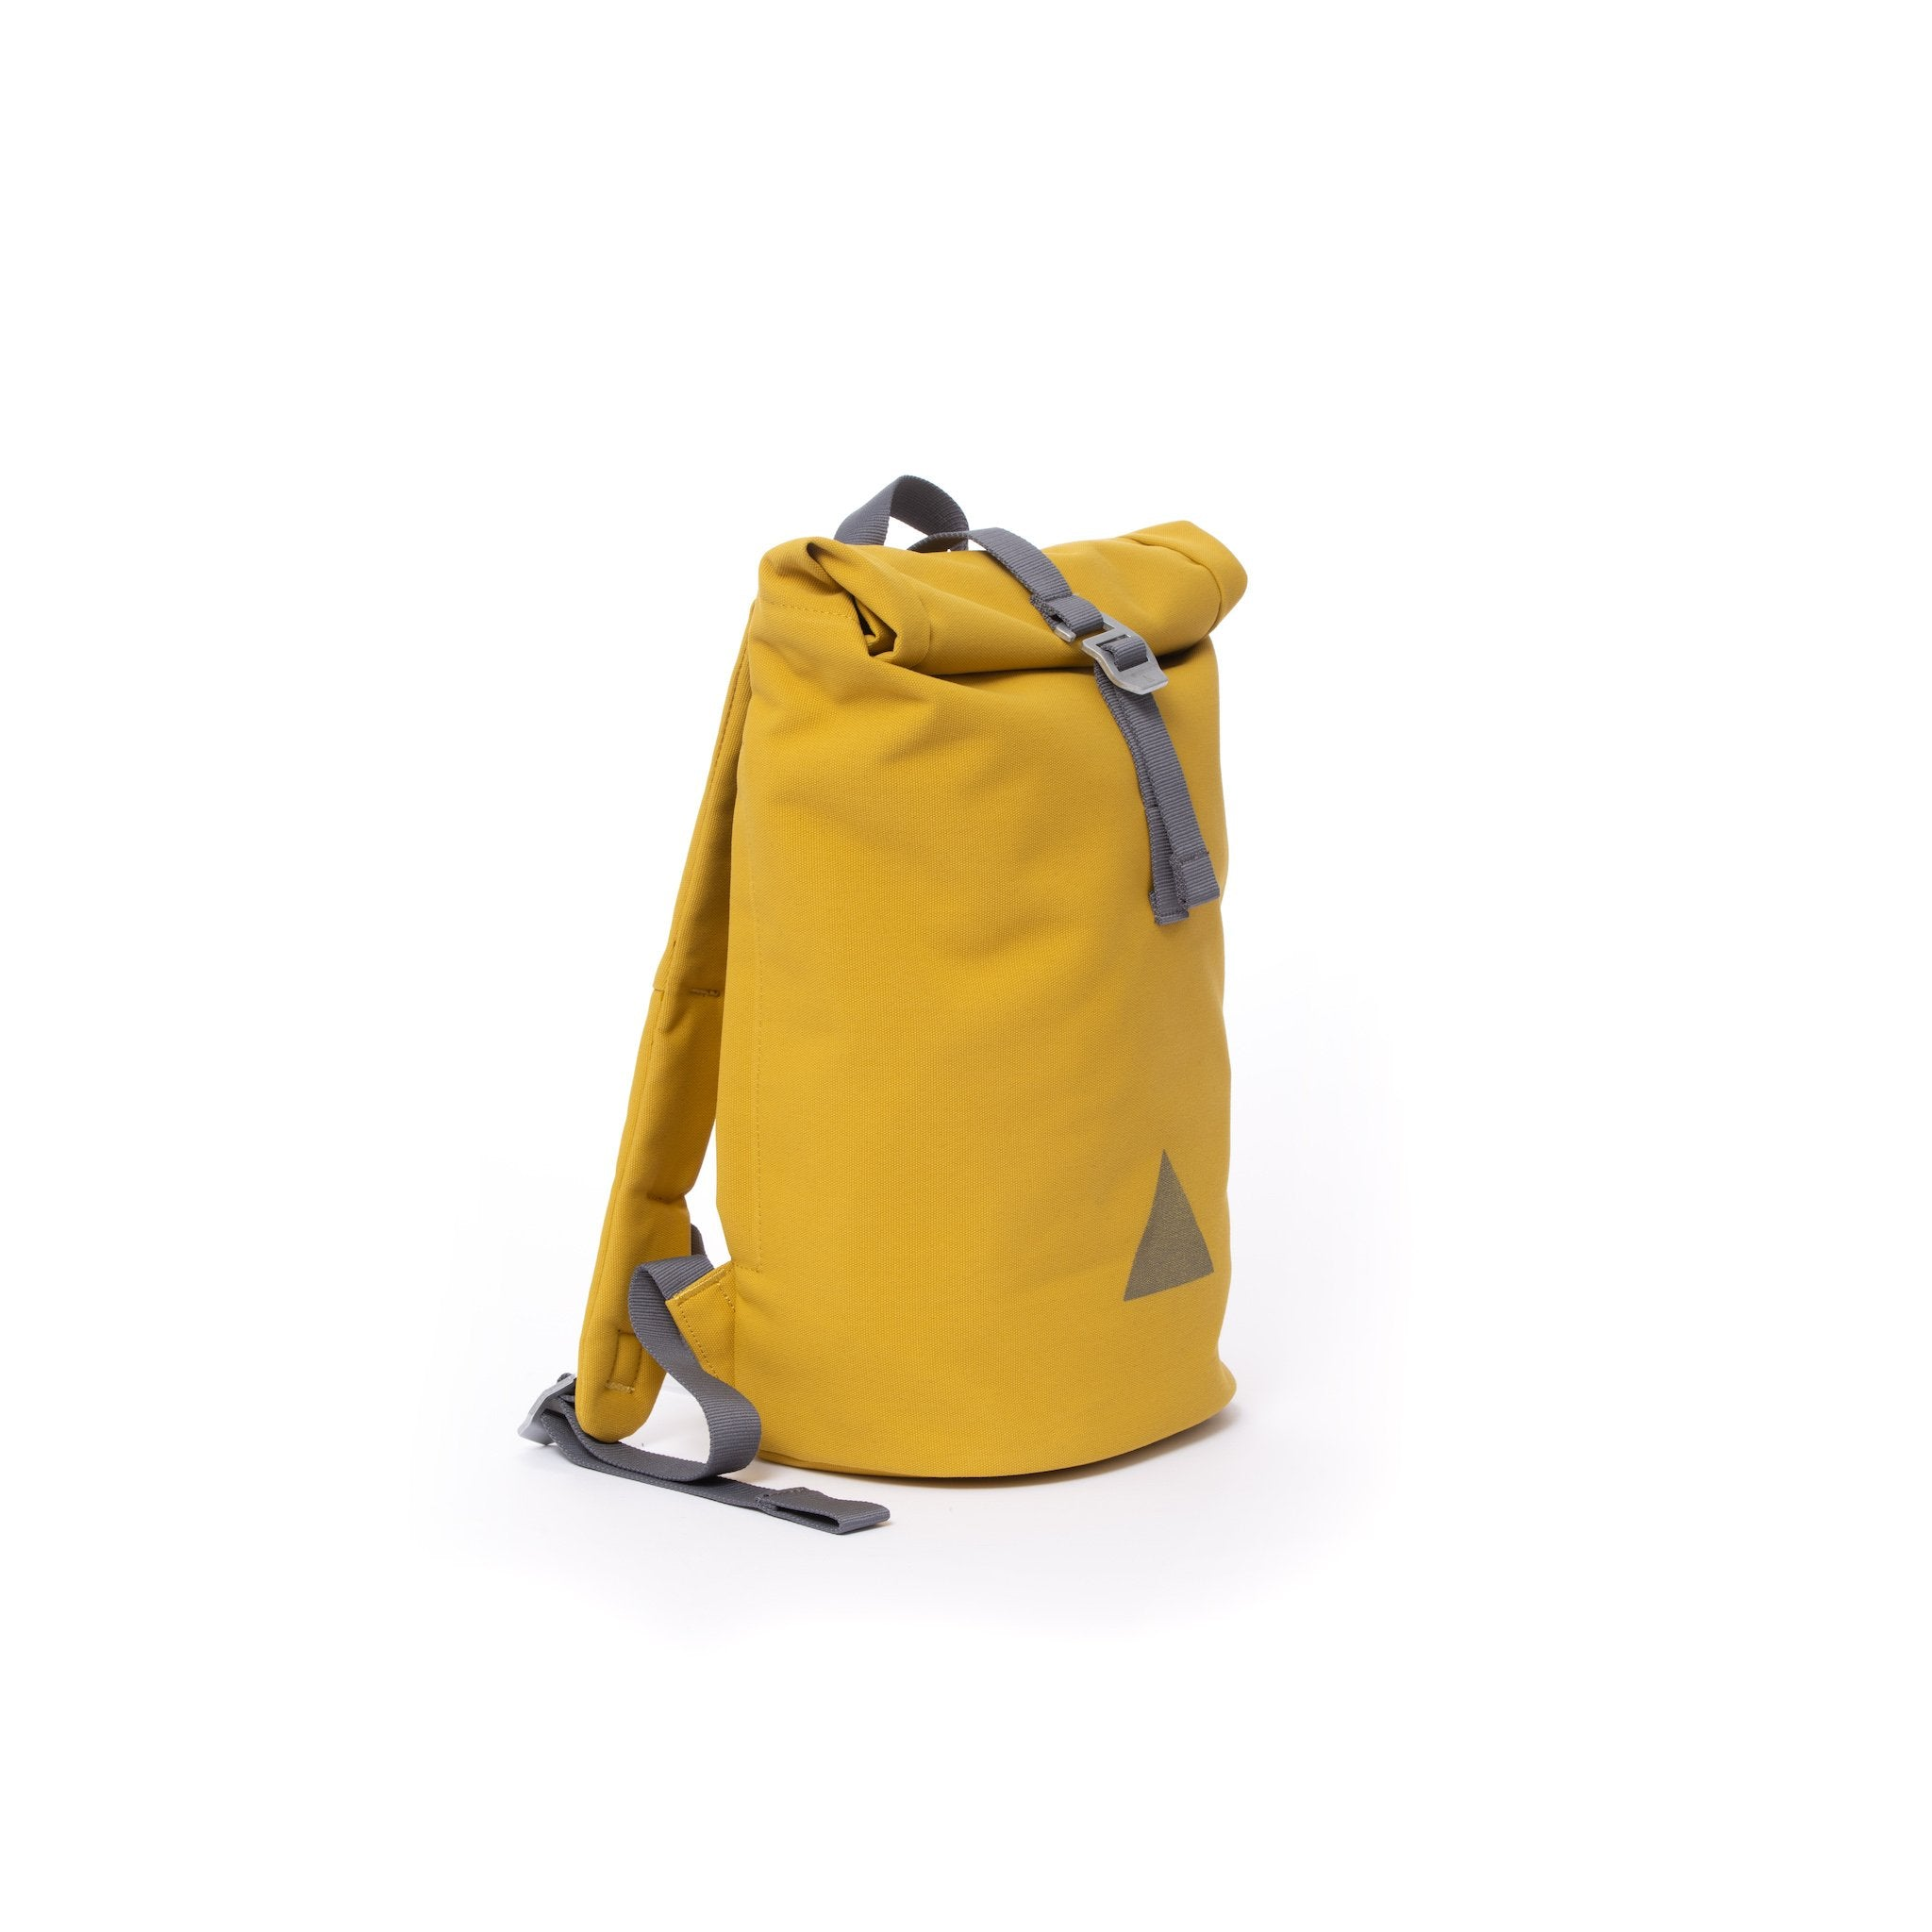 Yellow recycled canvas women's rolltop backpack.